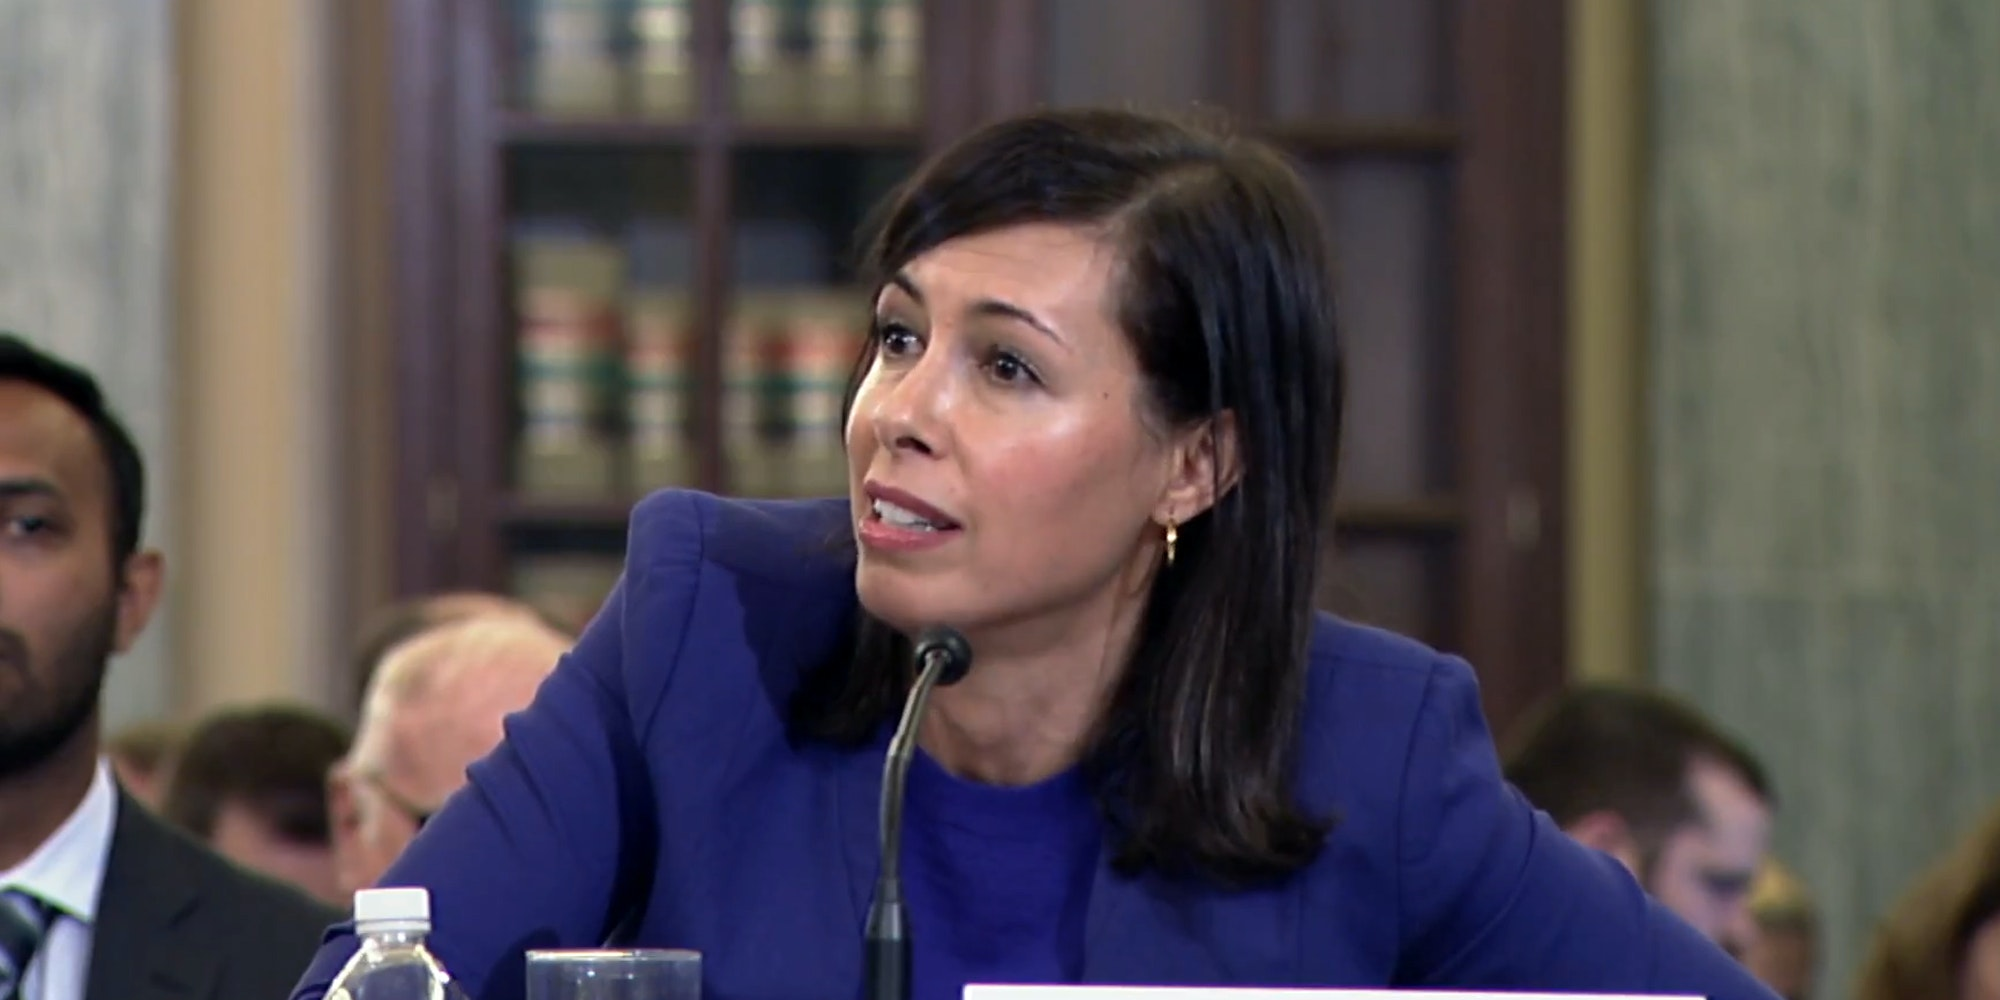 FCC Commissioner Jessica Rosenworcel testifying before Congress in 2018.